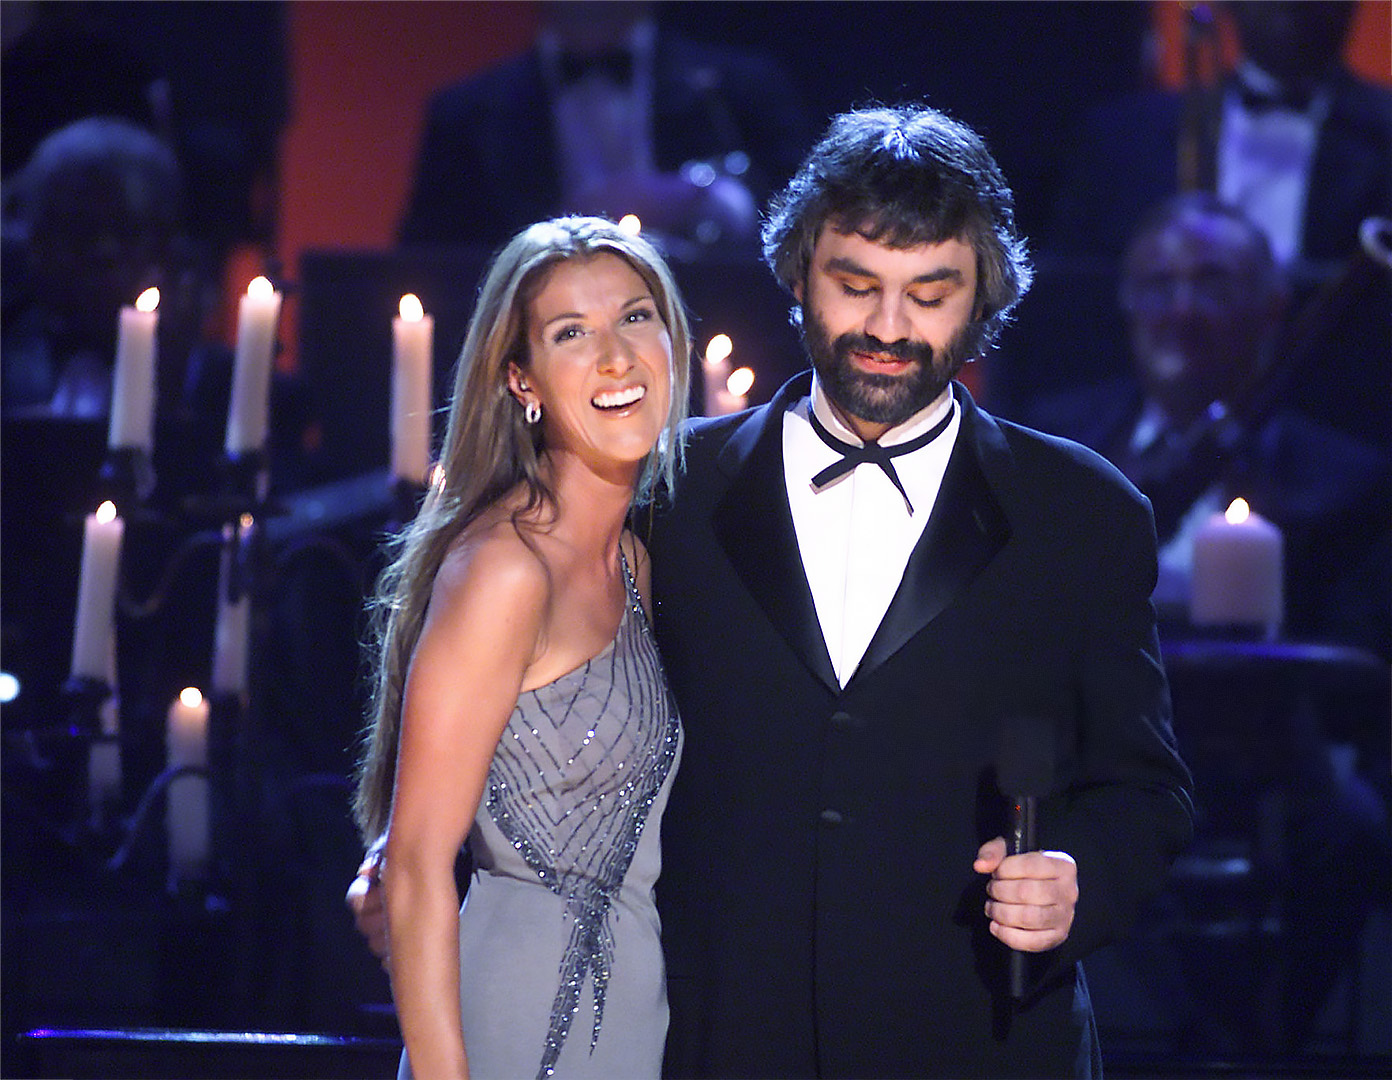 Céline Dion, Andrea Bocelli (© Photo by Frank Micelotta/ImageDirect/Getty Images)